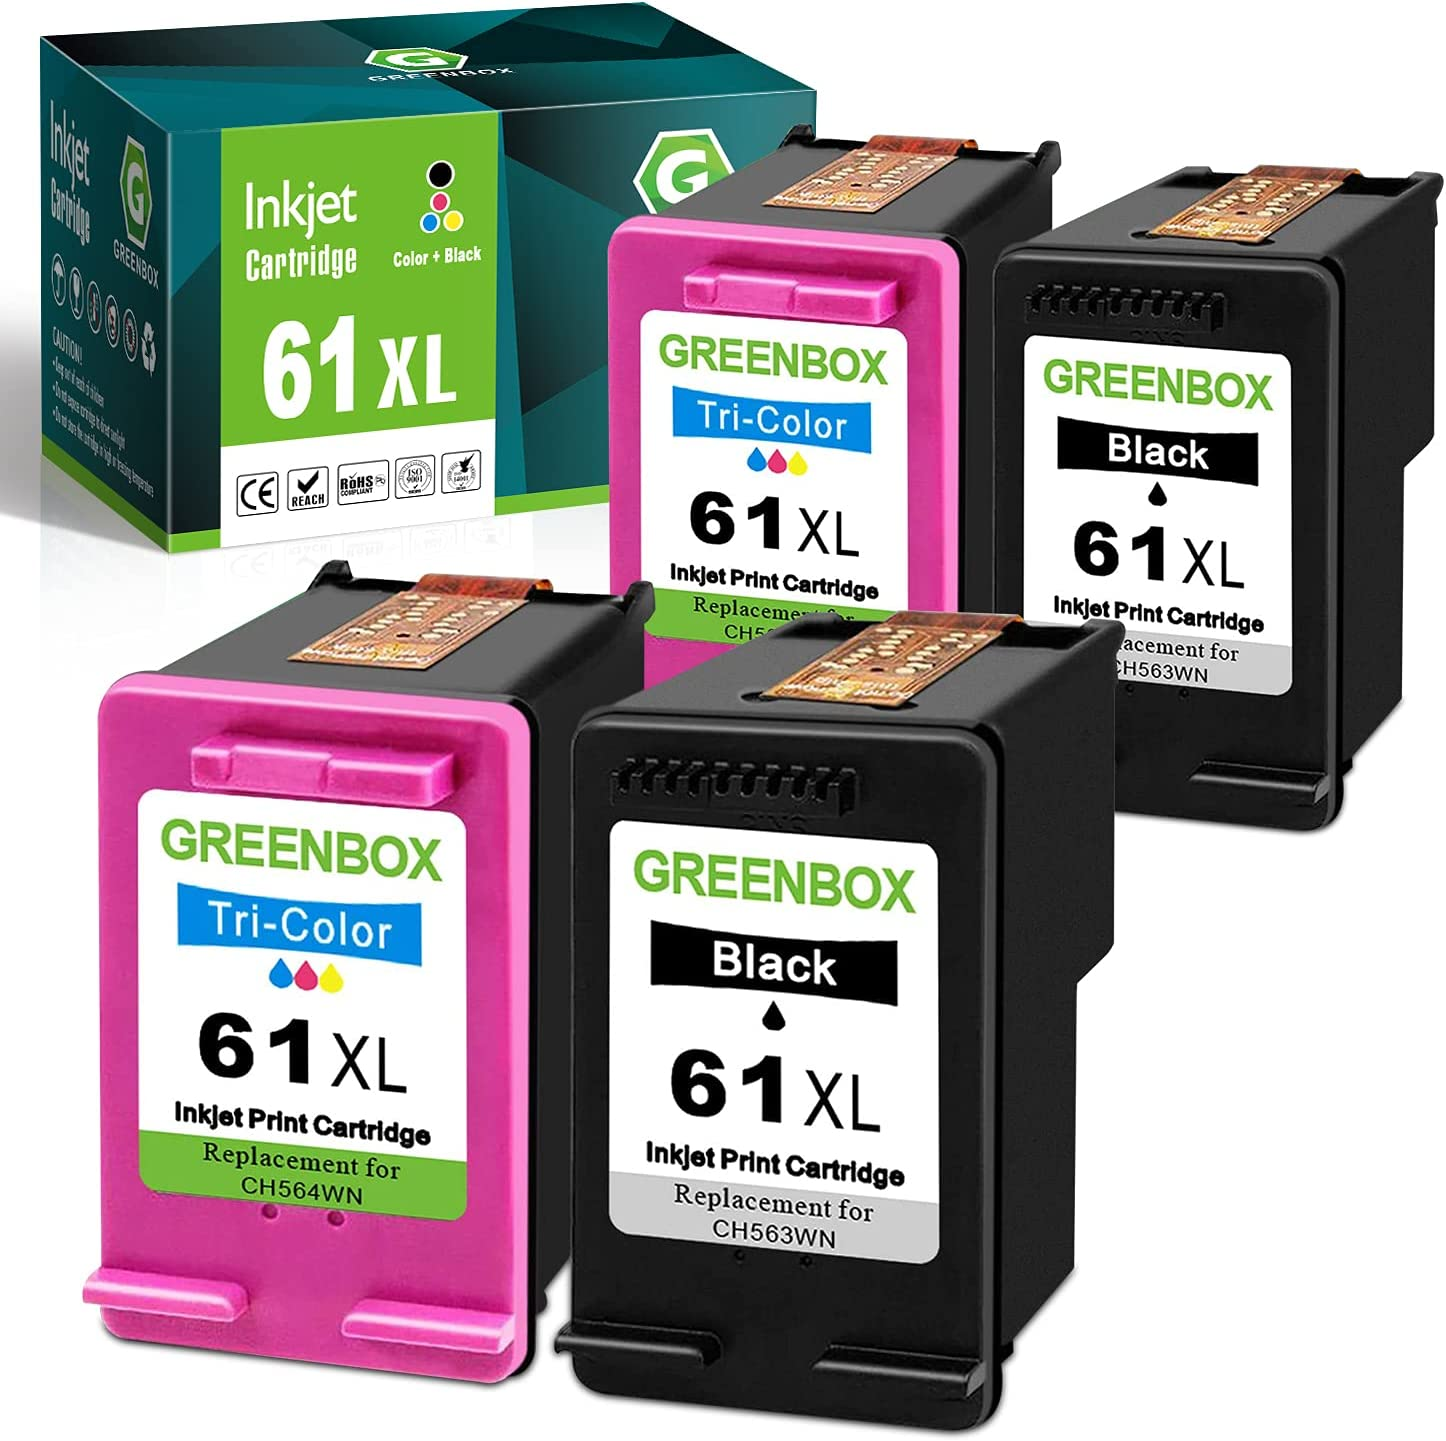 GREENBOX Remanufactured Ink Cartridge 61 Replacement for HP 61XL 61 XL for Hp Envy 4500 5530 5534 5535 Deskjet 1000 1056 1010 1510 1512 2540 3050 050A Officejet 2620 Printer Tray (2 Black 2 Tri-Color)